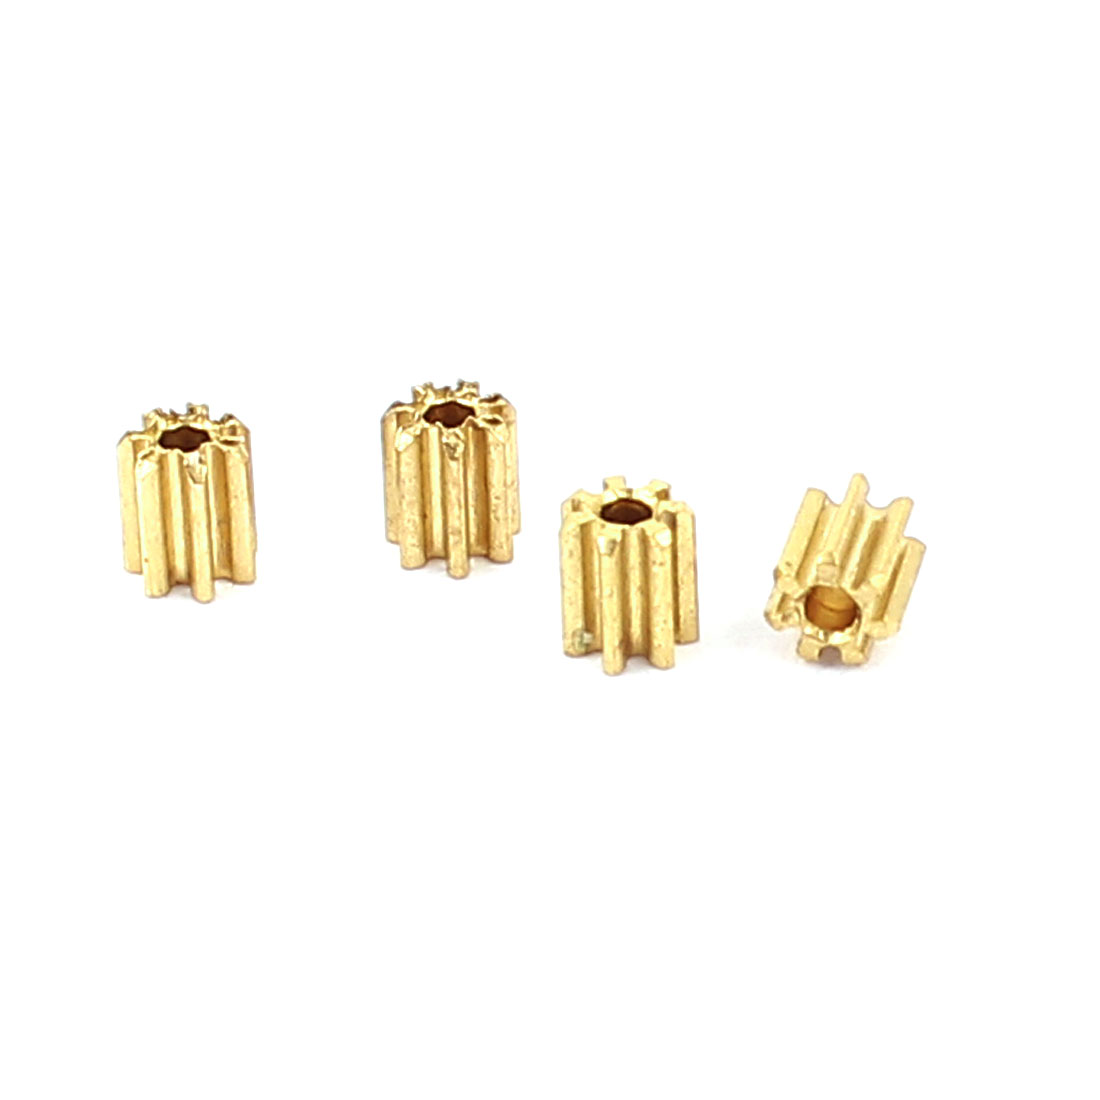 5 Pcs 2.5mmx1mm 7 Teeth Brass Thick Motor Spindle Spur Gear for DIY Robbot